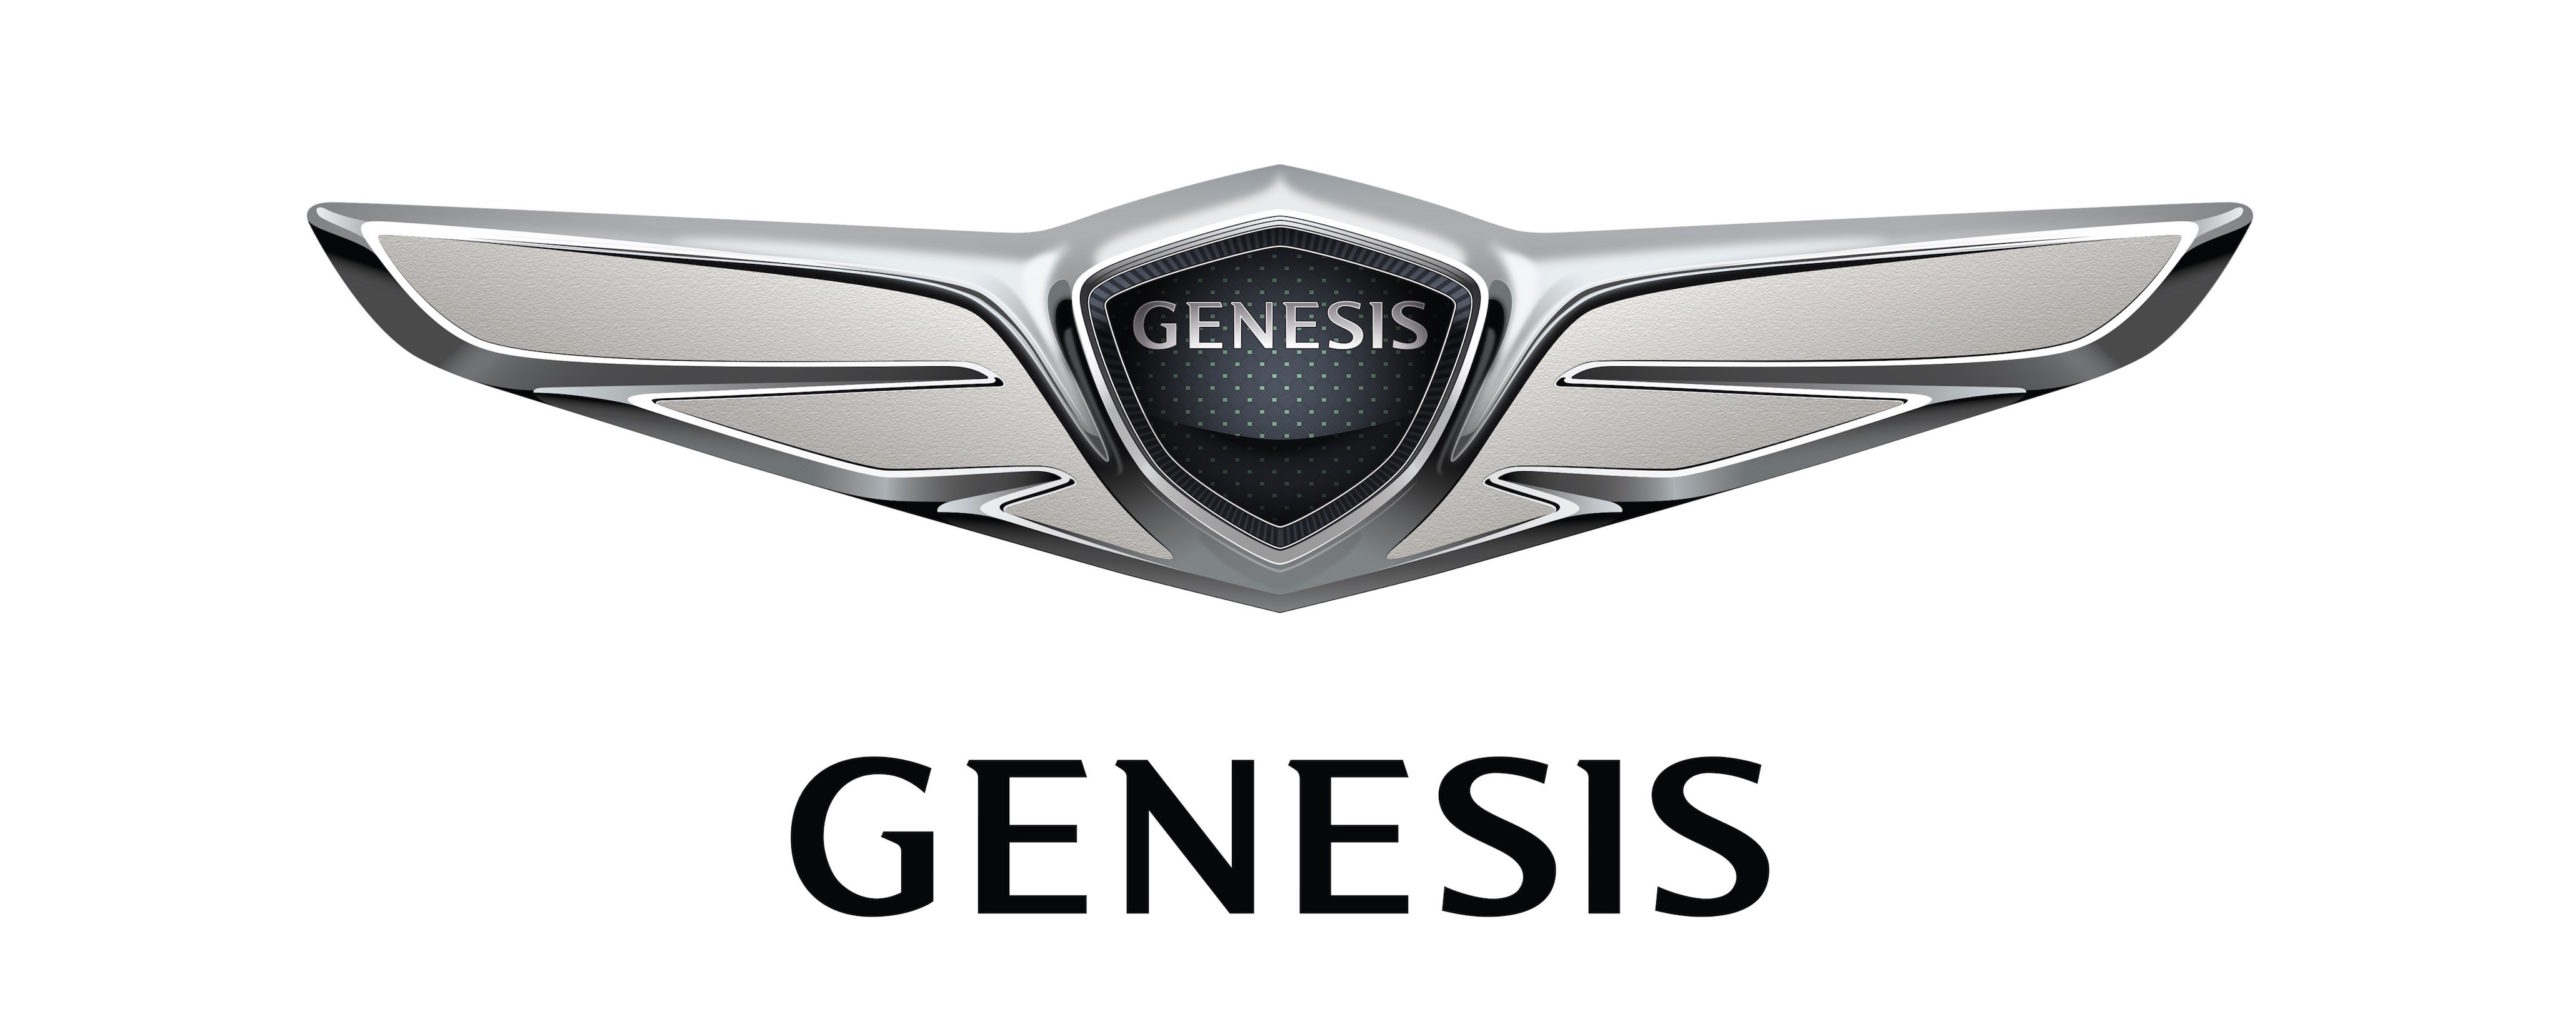 Genesis Protection Plan Logo